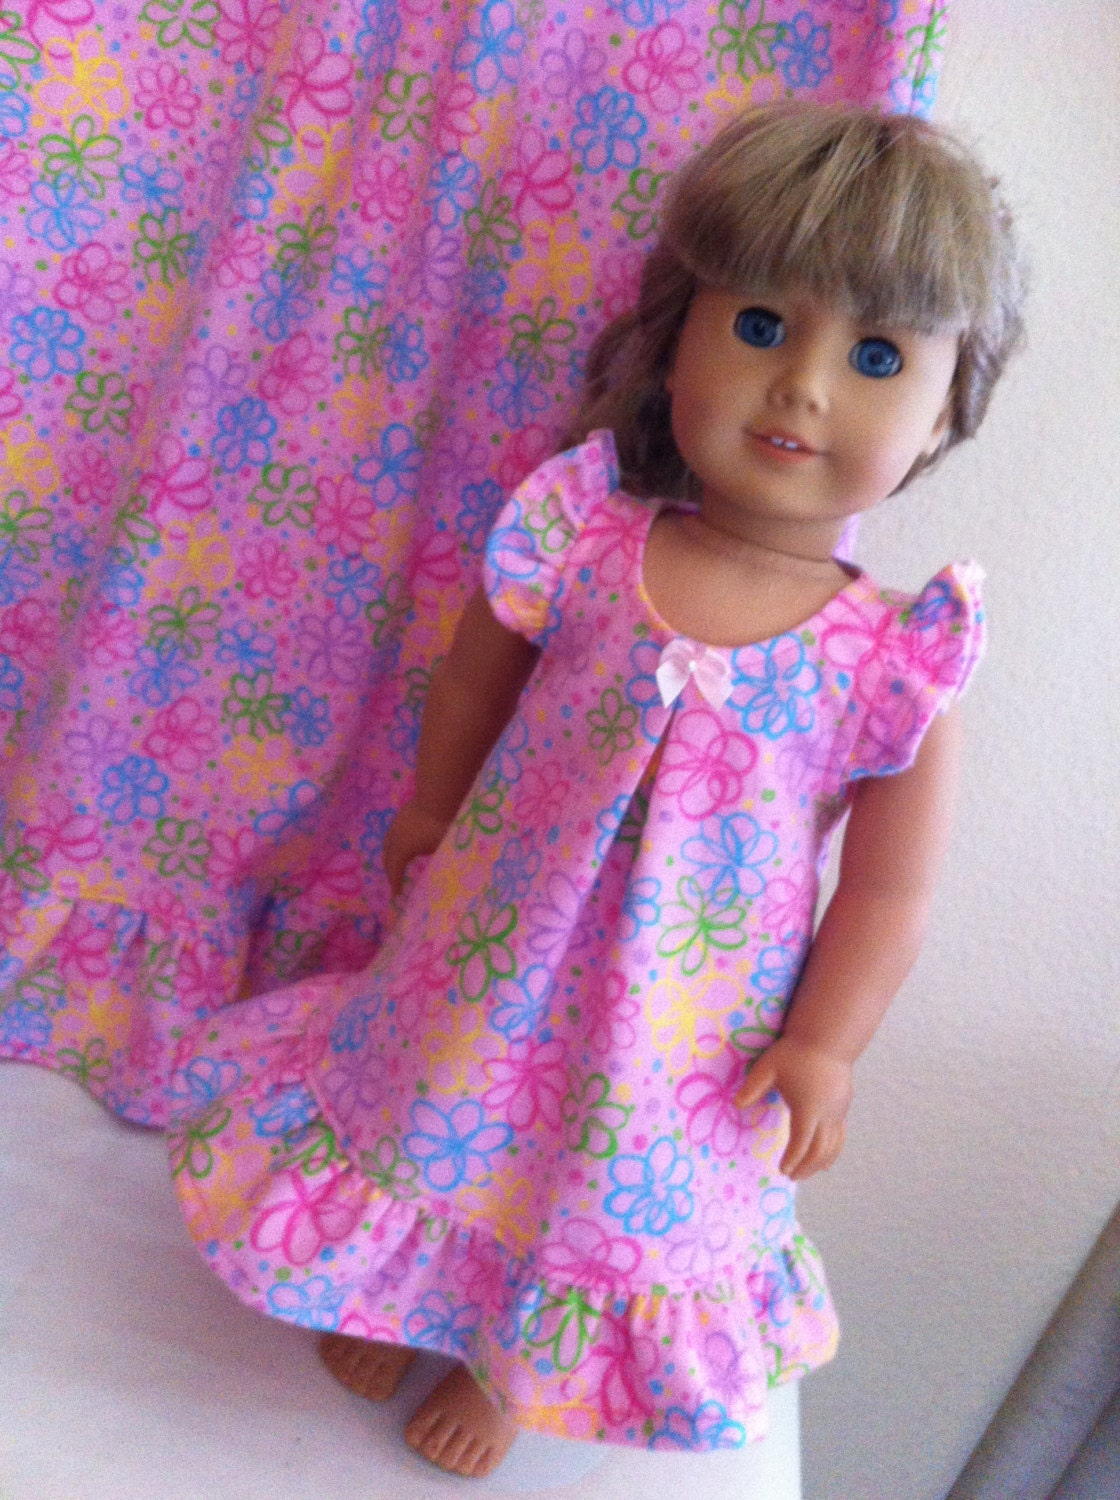 Beautiful Dolls, Fashionable Clothes and Fun Accessories